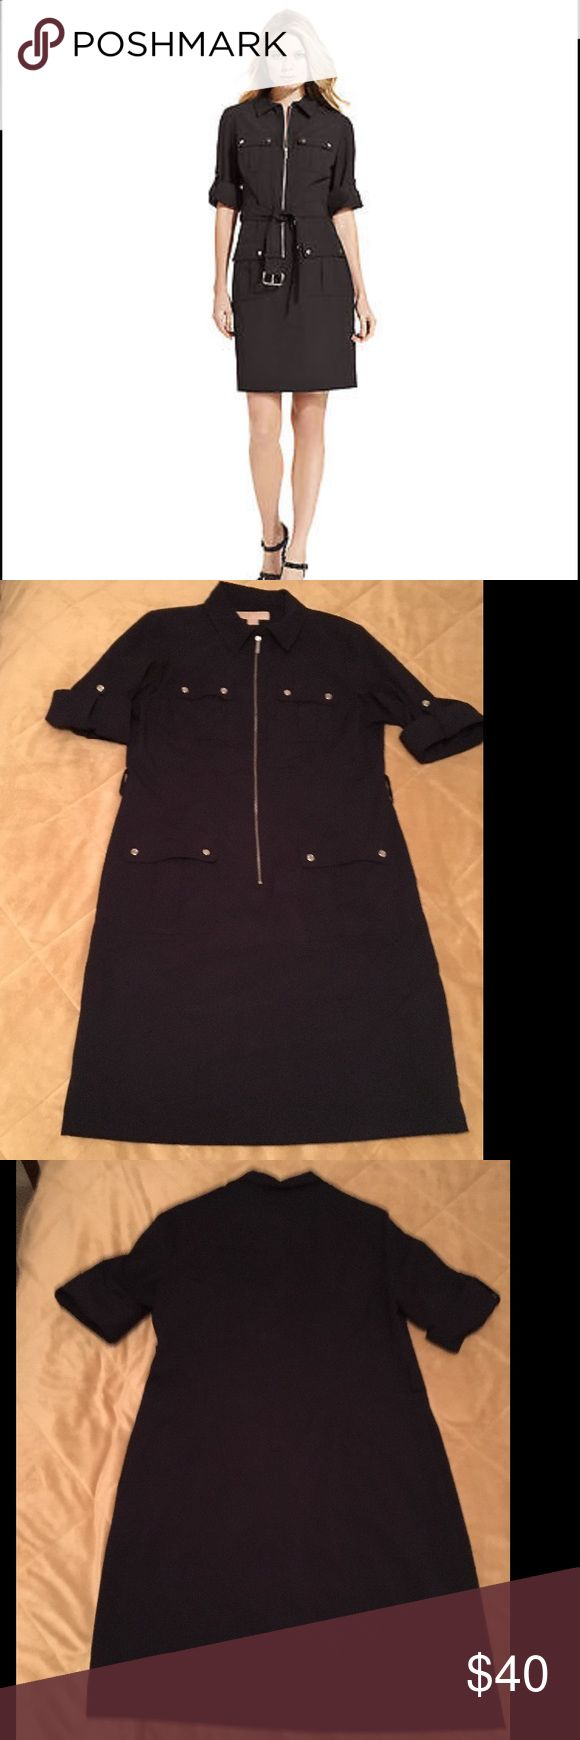 Michael Kors Zip Front Dress Dark Navy (almost black) MK dress.  Zip front.  Rolled sleeves.  Front pockets.  Sorry, no belt.  EUC. Michael Kors Dresses Midi